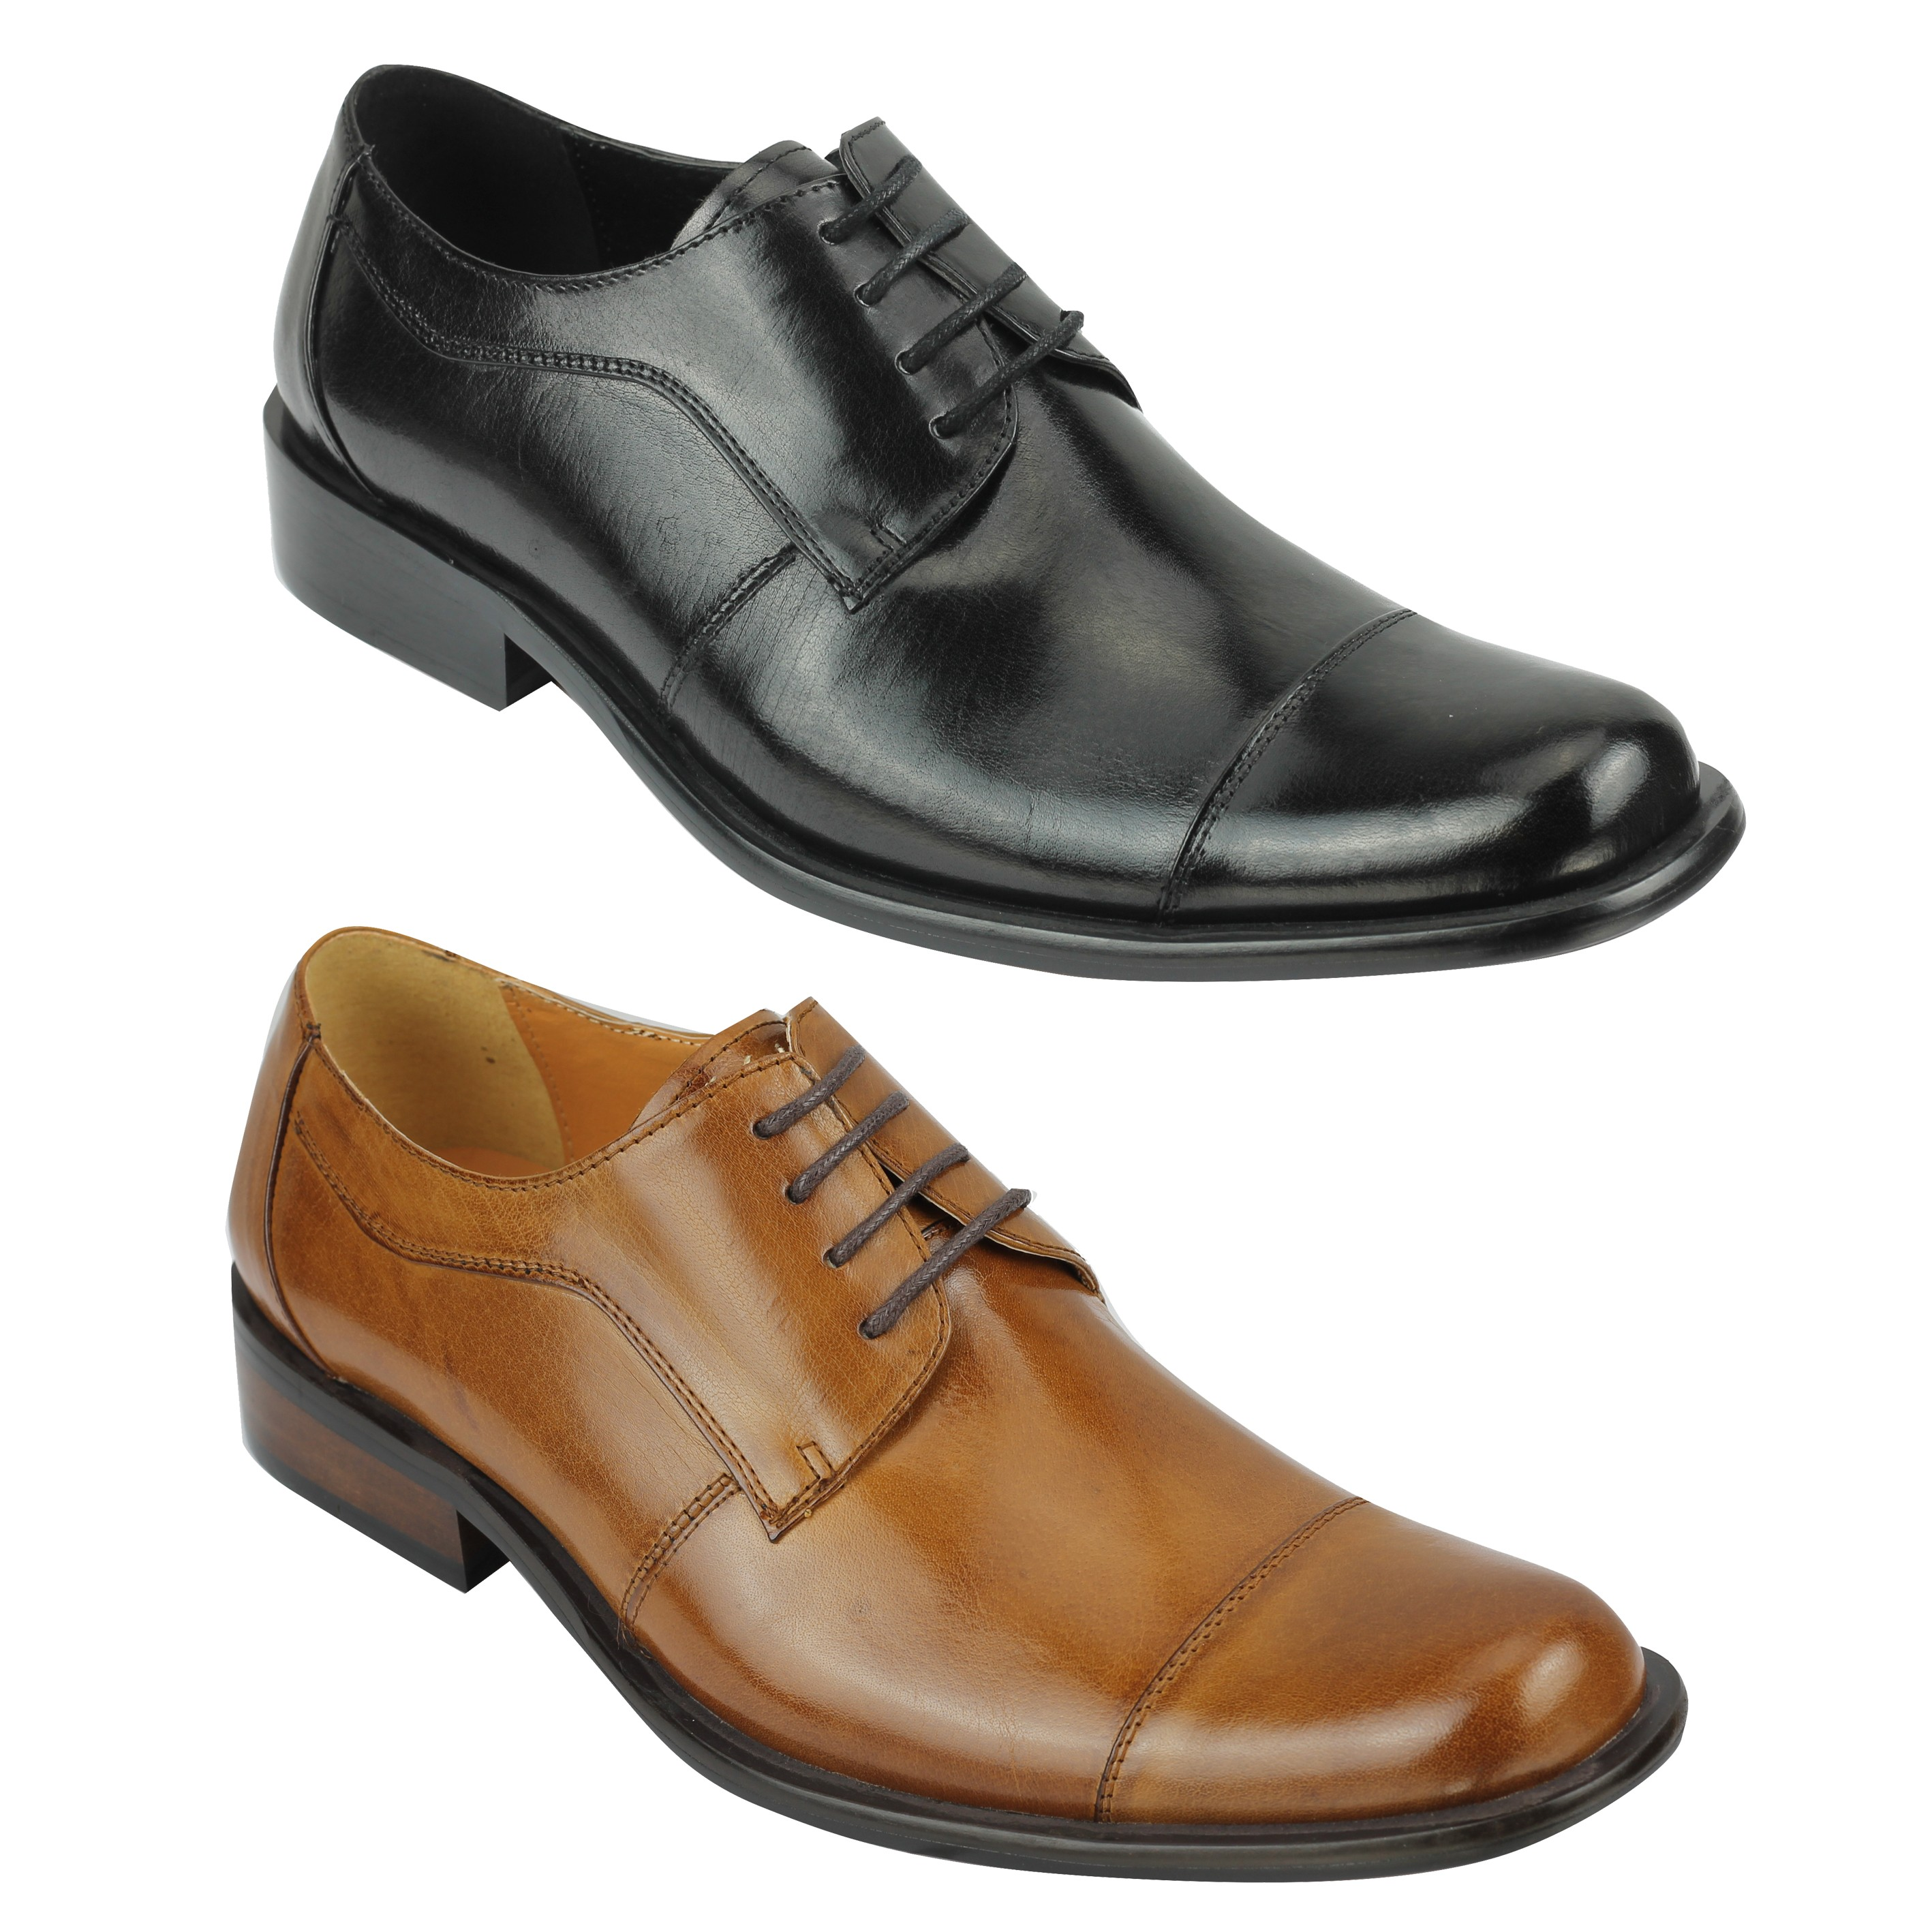 Details about New Mens Real Leather Shoes Polished Black Tan Smart Formal Office Lace up Derby